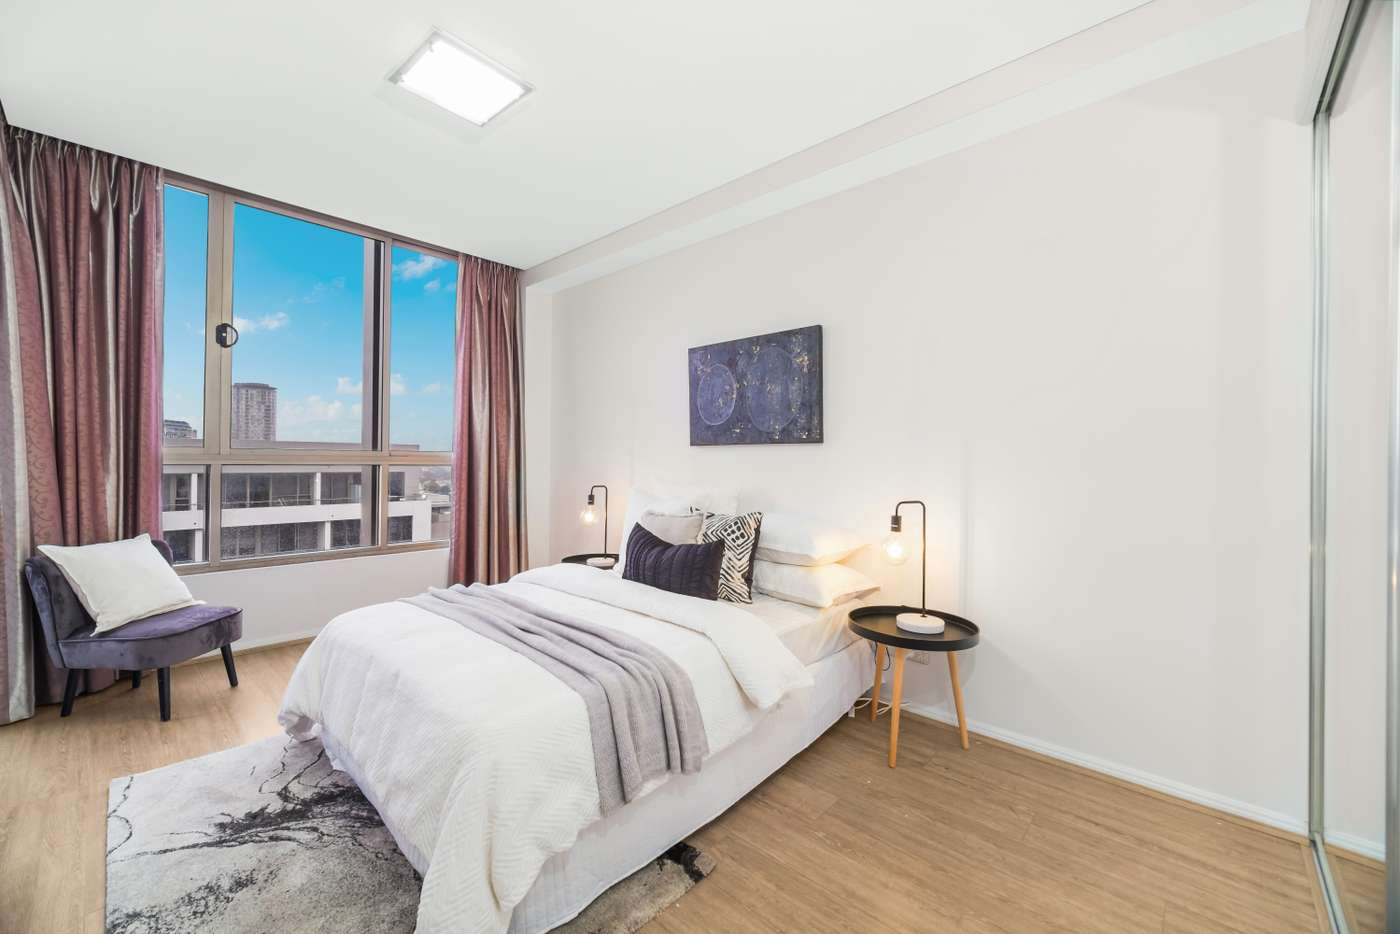 Fifth view of Homely apartment listing, 941/12 Victoria Park Parade, Zetland NSW 2017